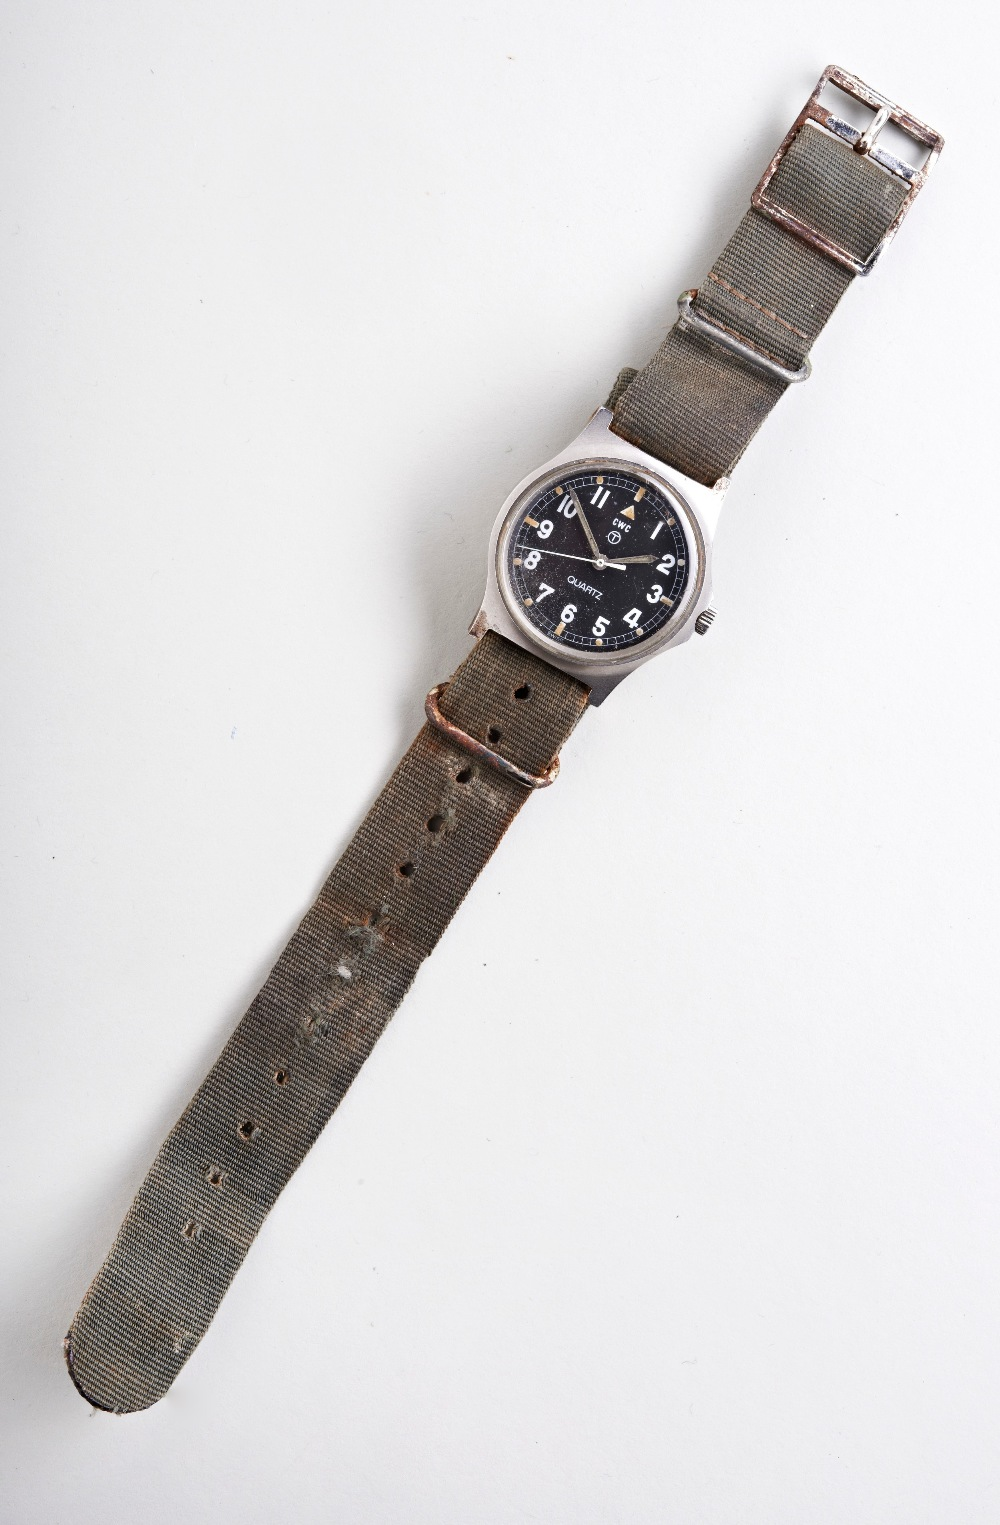 CWC 'FATBOY' MILITARY QUARTZ WATCH, c1980, with tritium dial, case backstamps with arrow and 6645-99 - Image 2 of 3